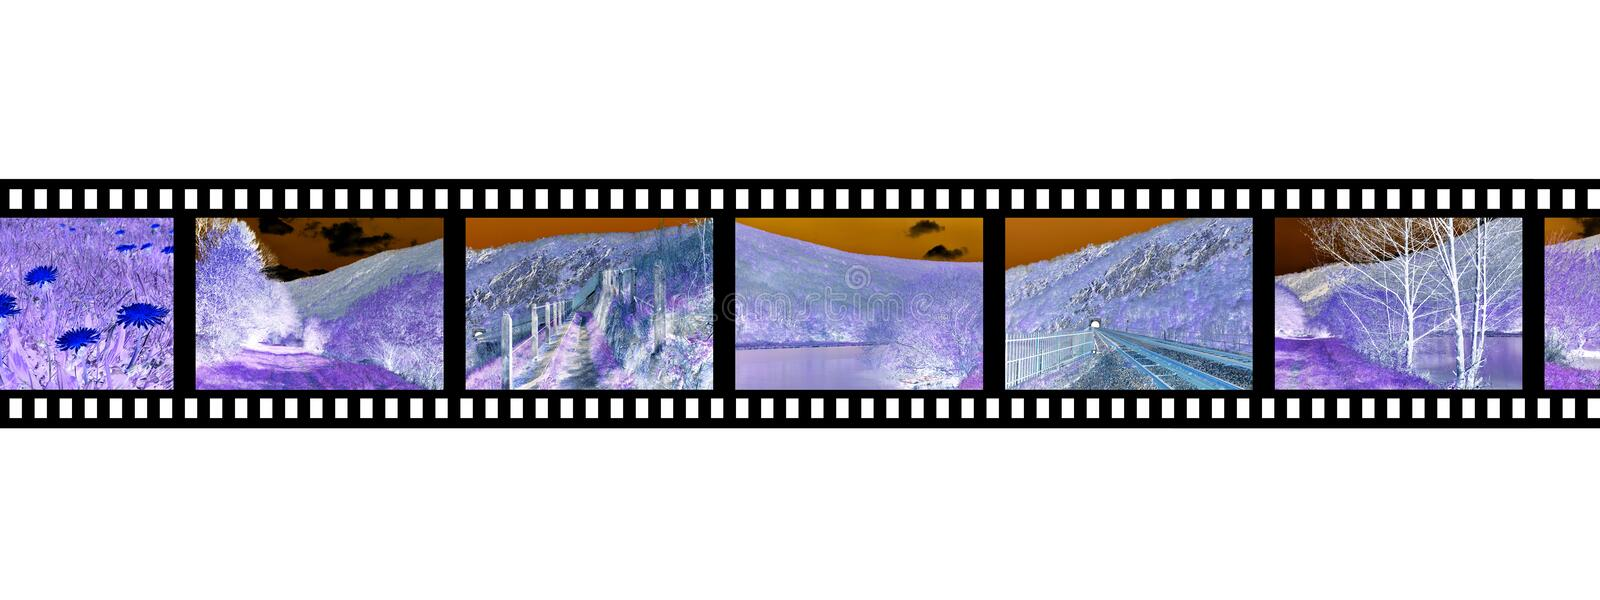 Filmstrip negative photo film. Photography royalty free stock photography